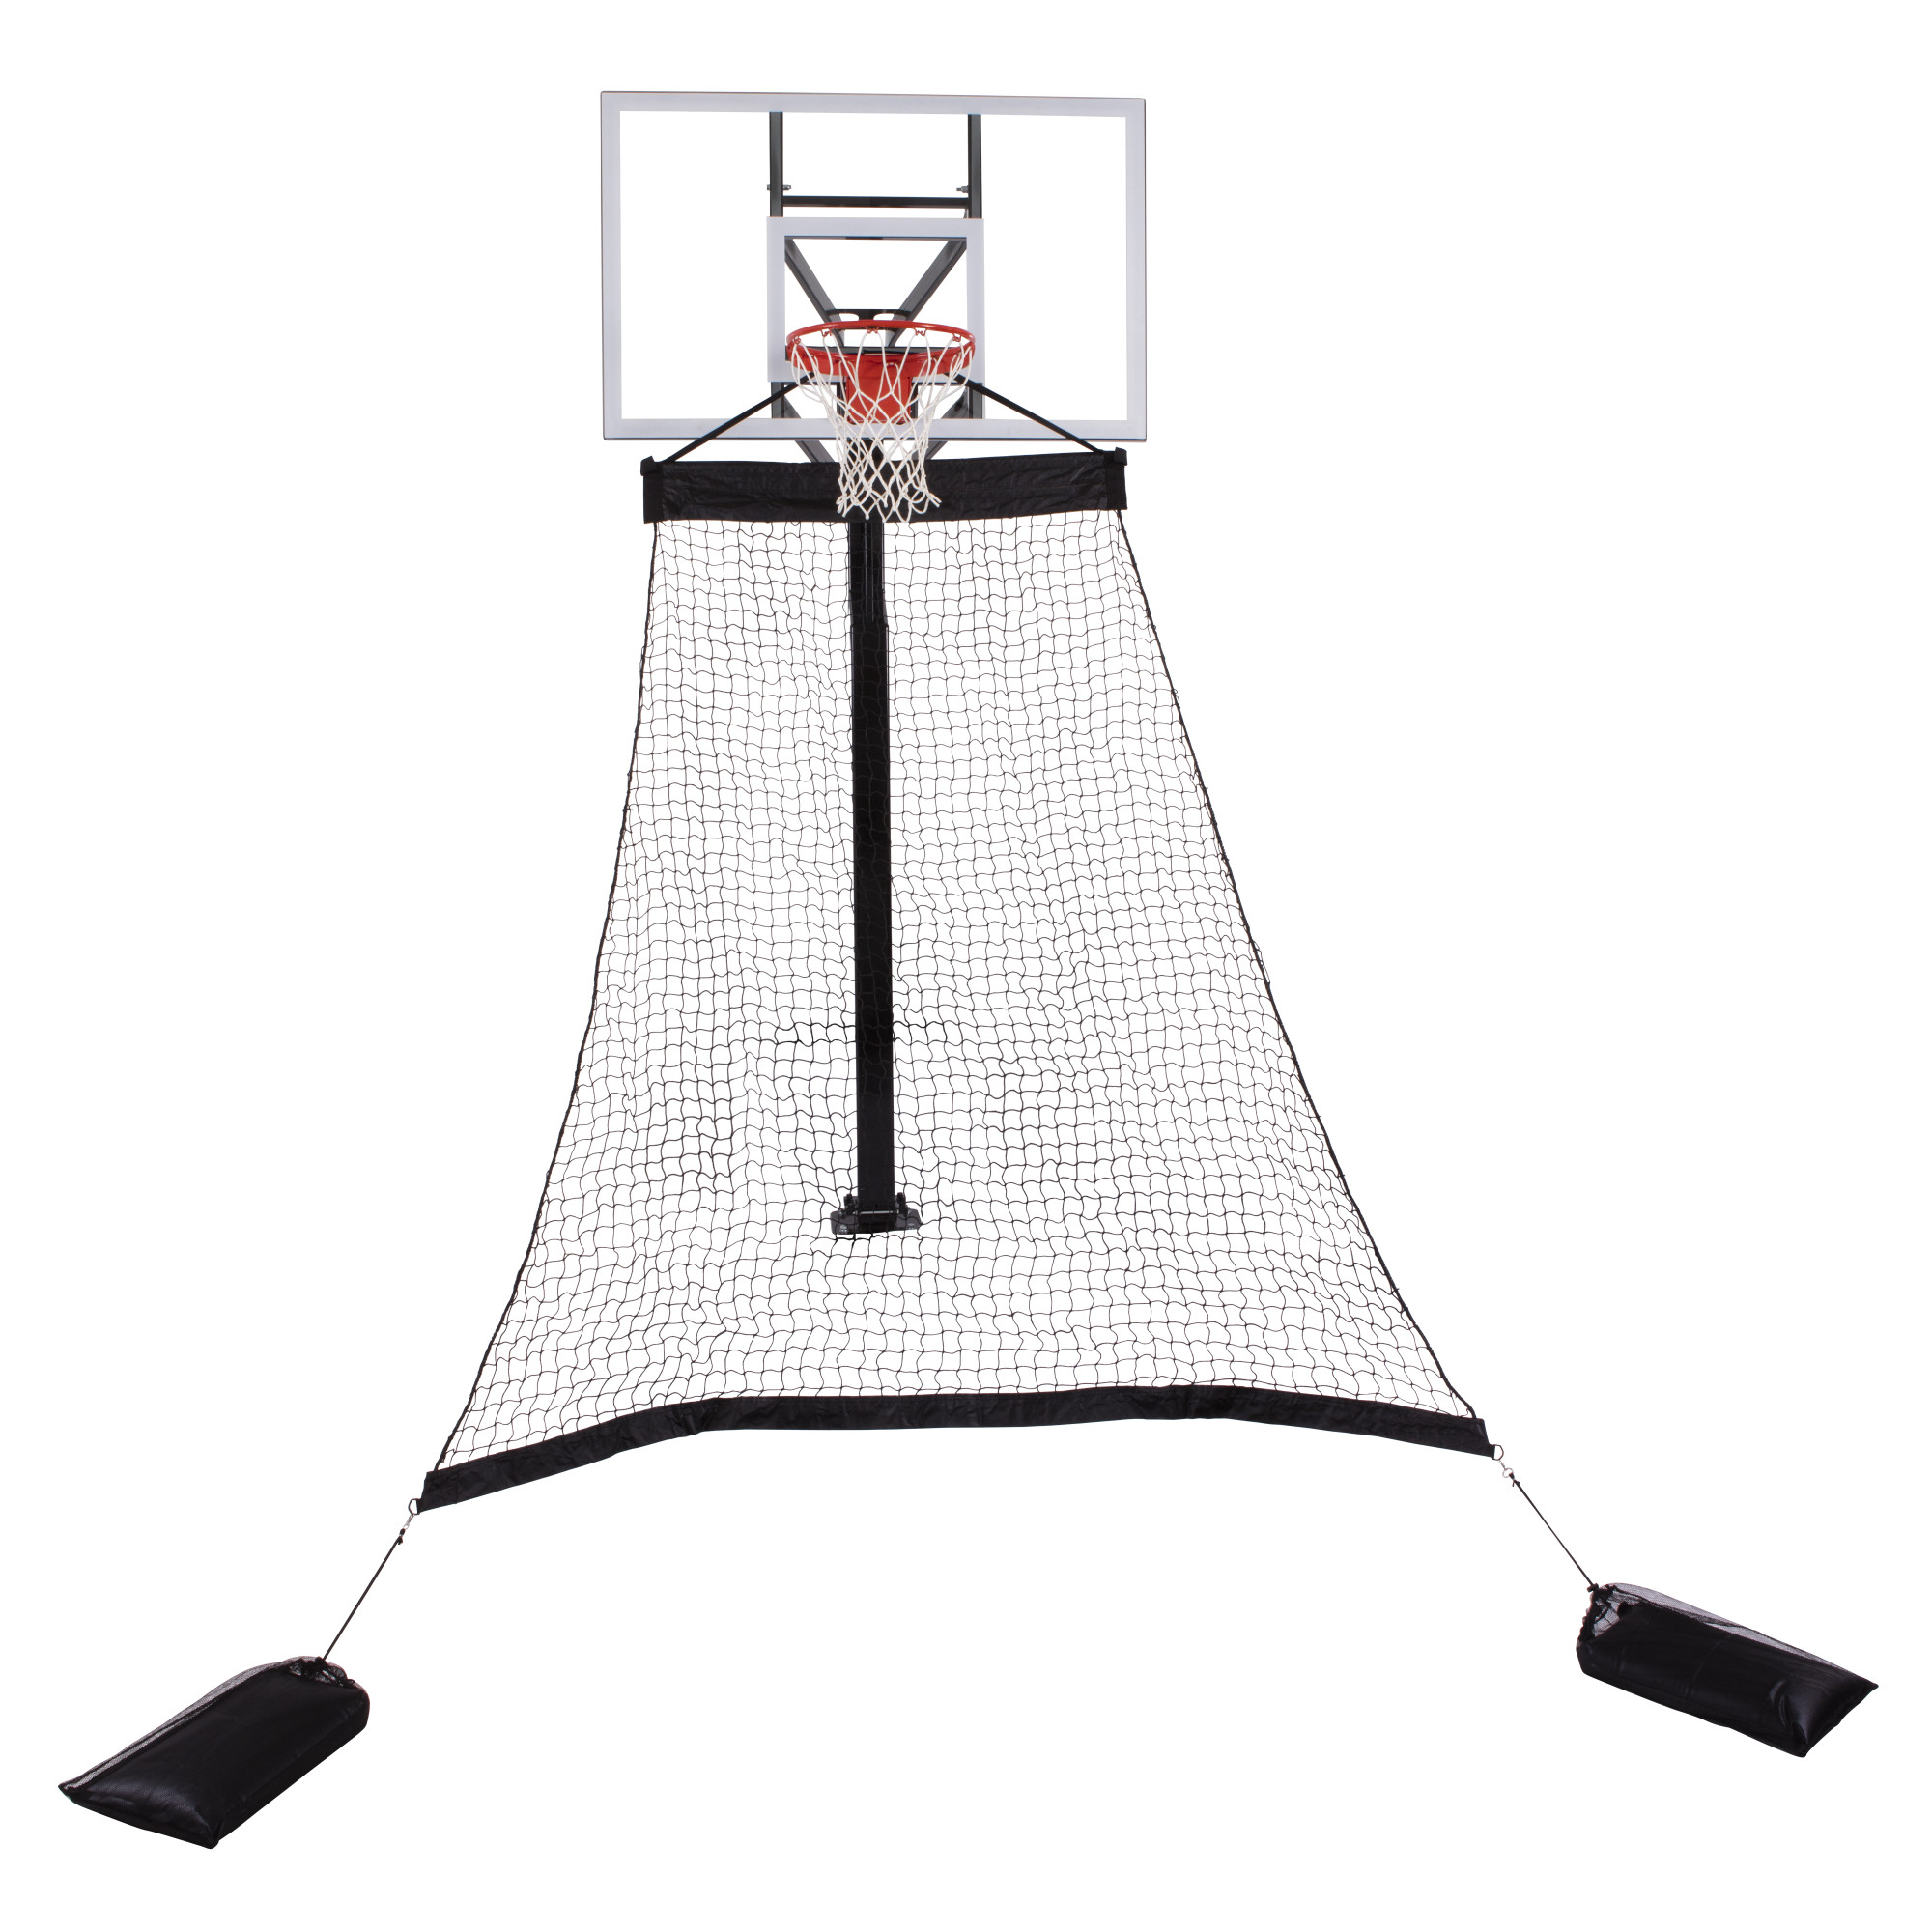 Goalrilla Basketball Hoop Return System Great for Solo Play or Free-Throw Practice and Compatible with Most In Ground Hoops